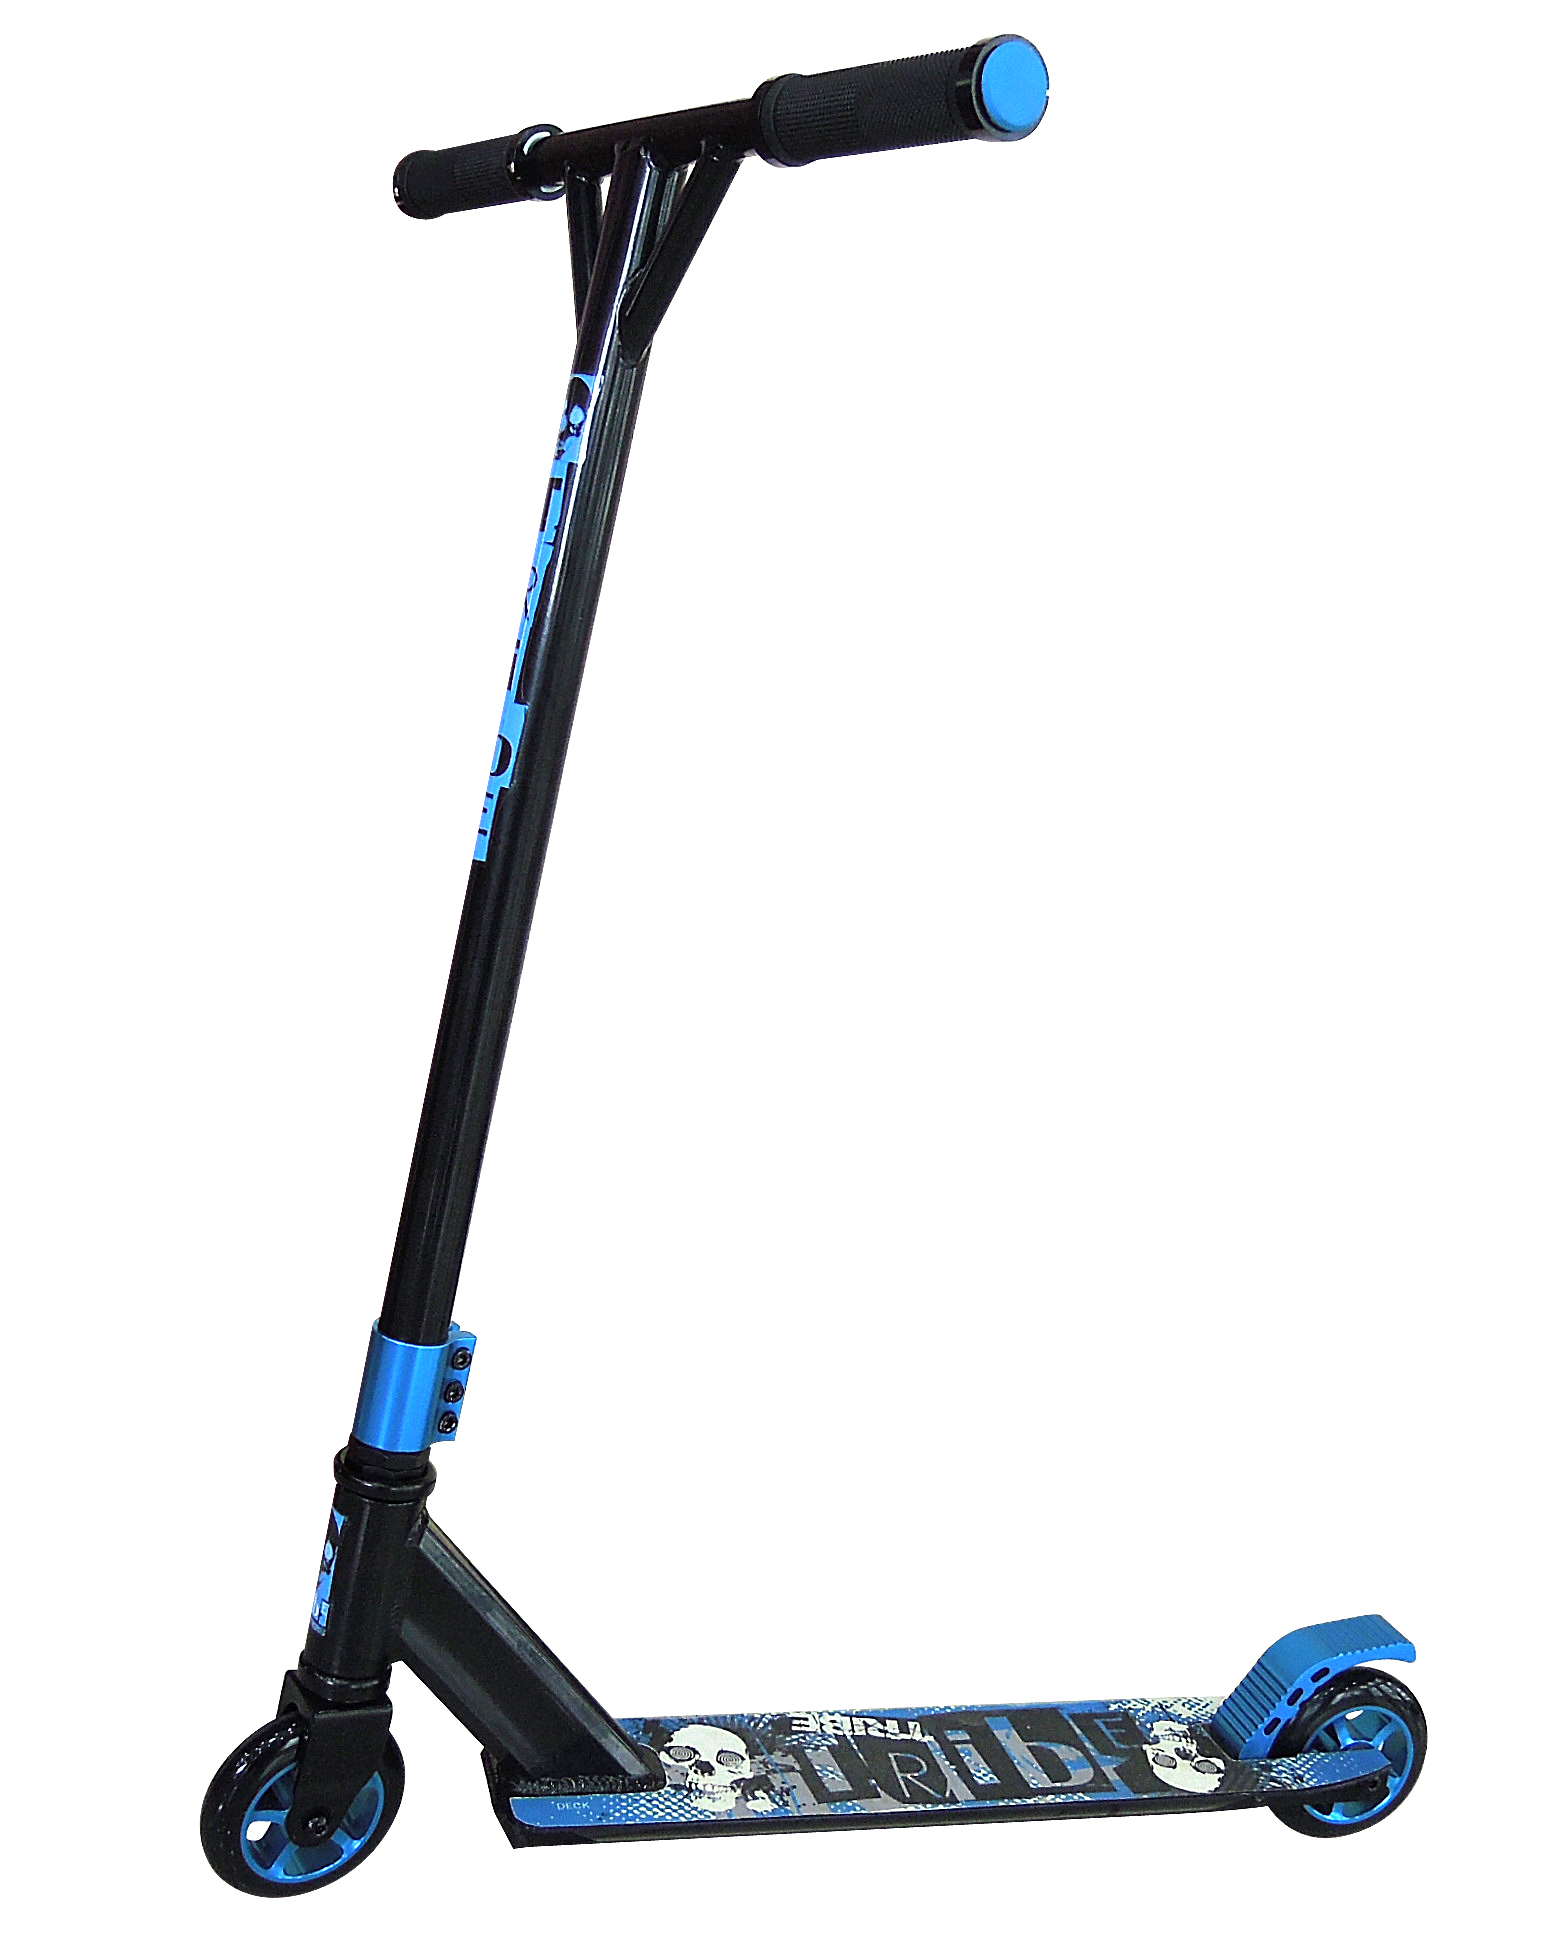 Stunt Scooter with international Standard